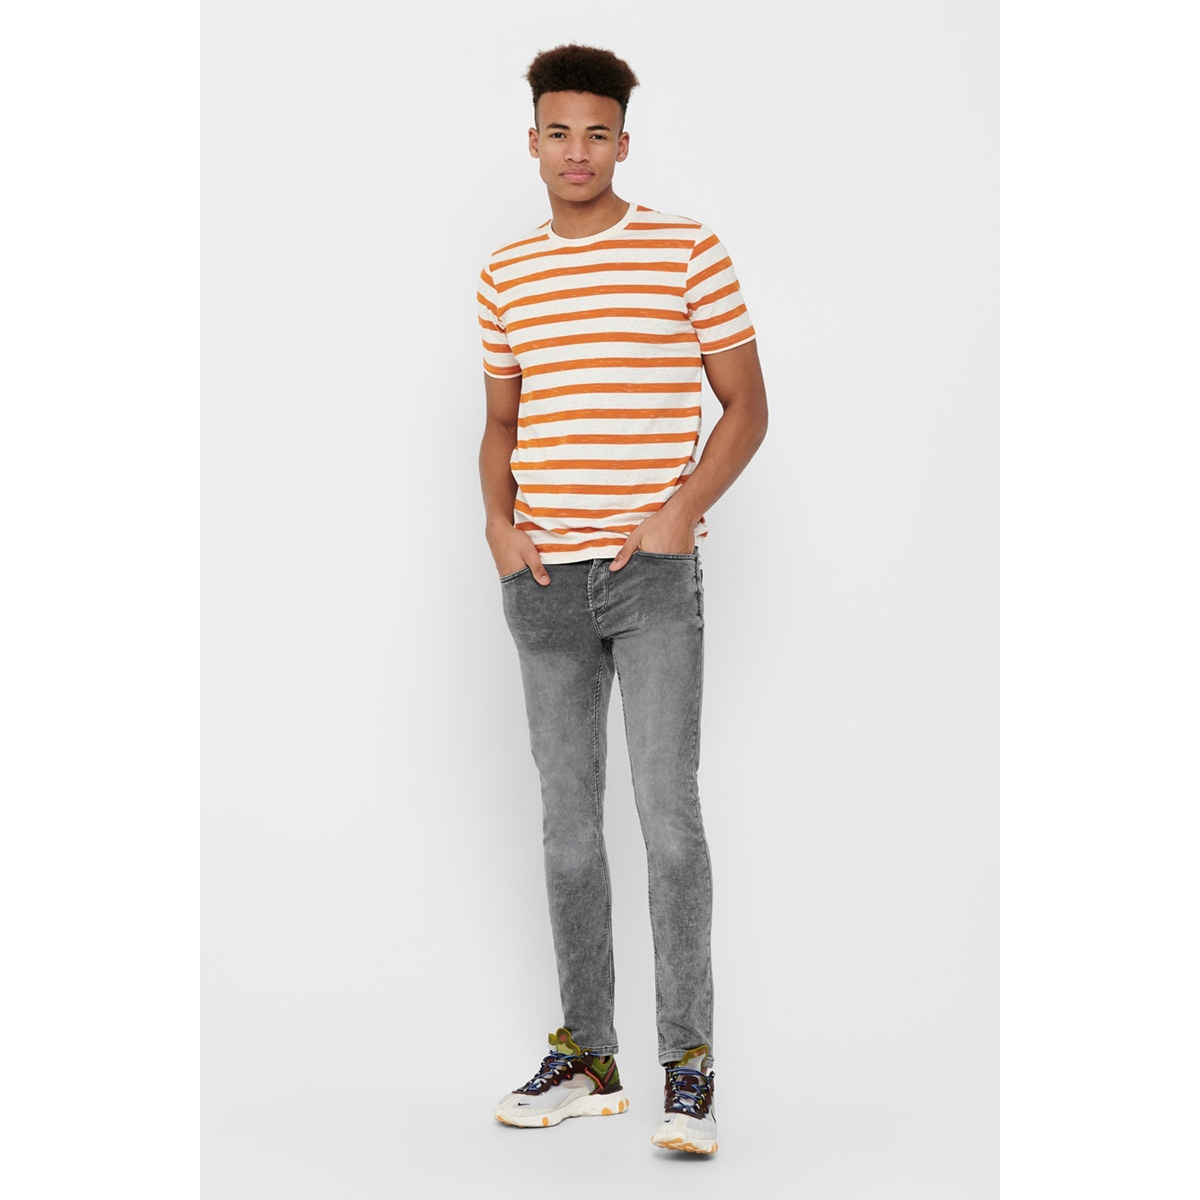 onselky stripe ss tee 22012161 only & sons t-shirt marmalade